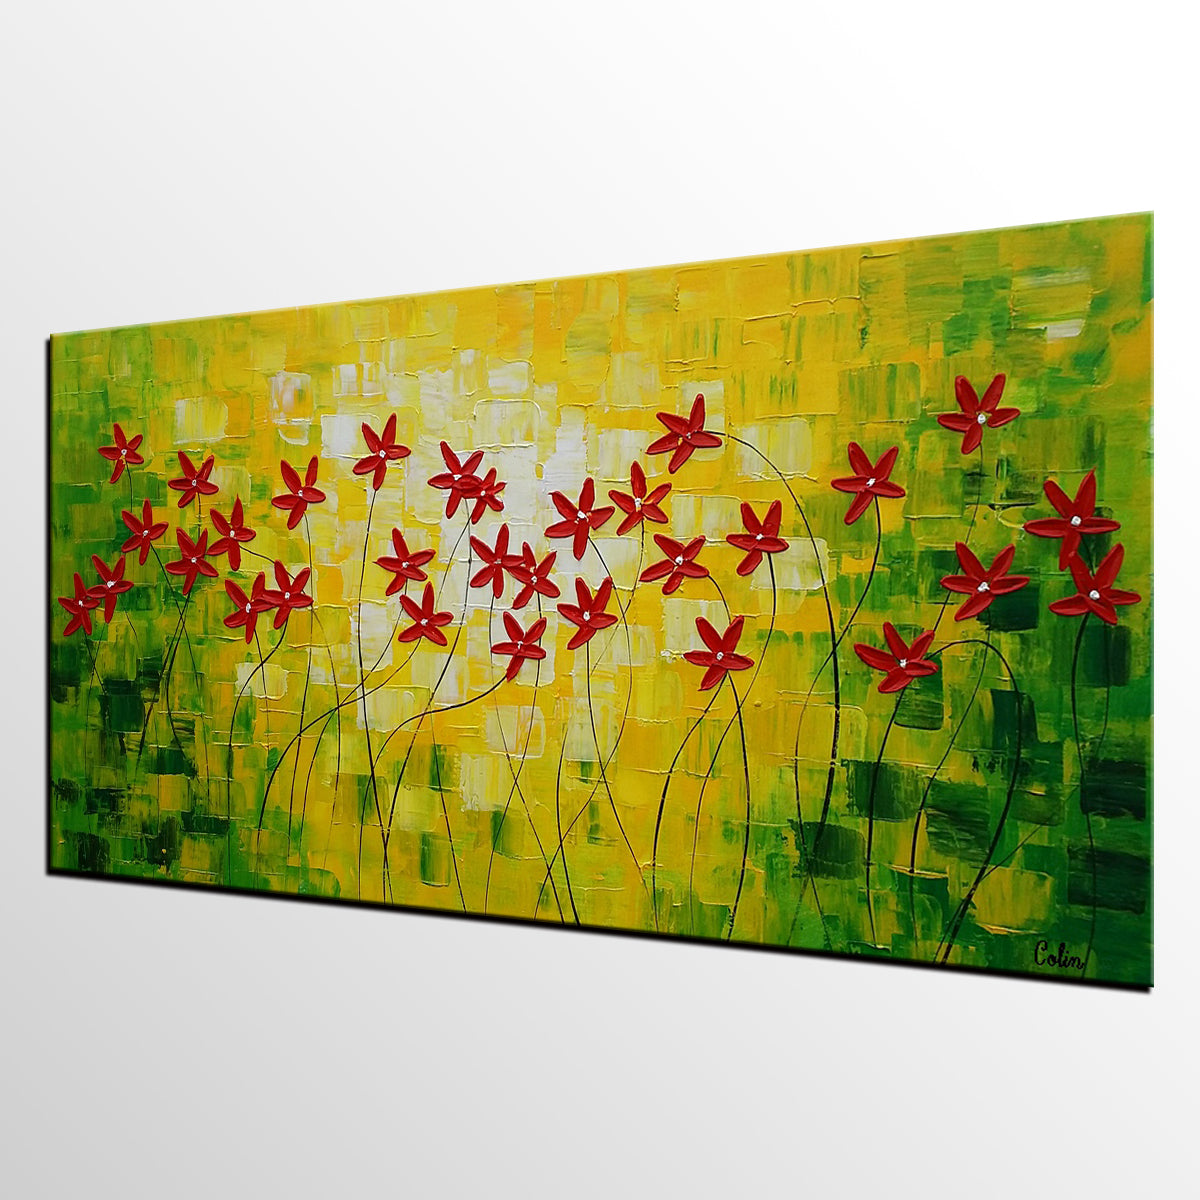 Abstract Painting, Abstract Wall Art, Flower Painting, Wall Decor, Canvas Art, Wall Art, Contemporary Artwork, Art on Canvas 269